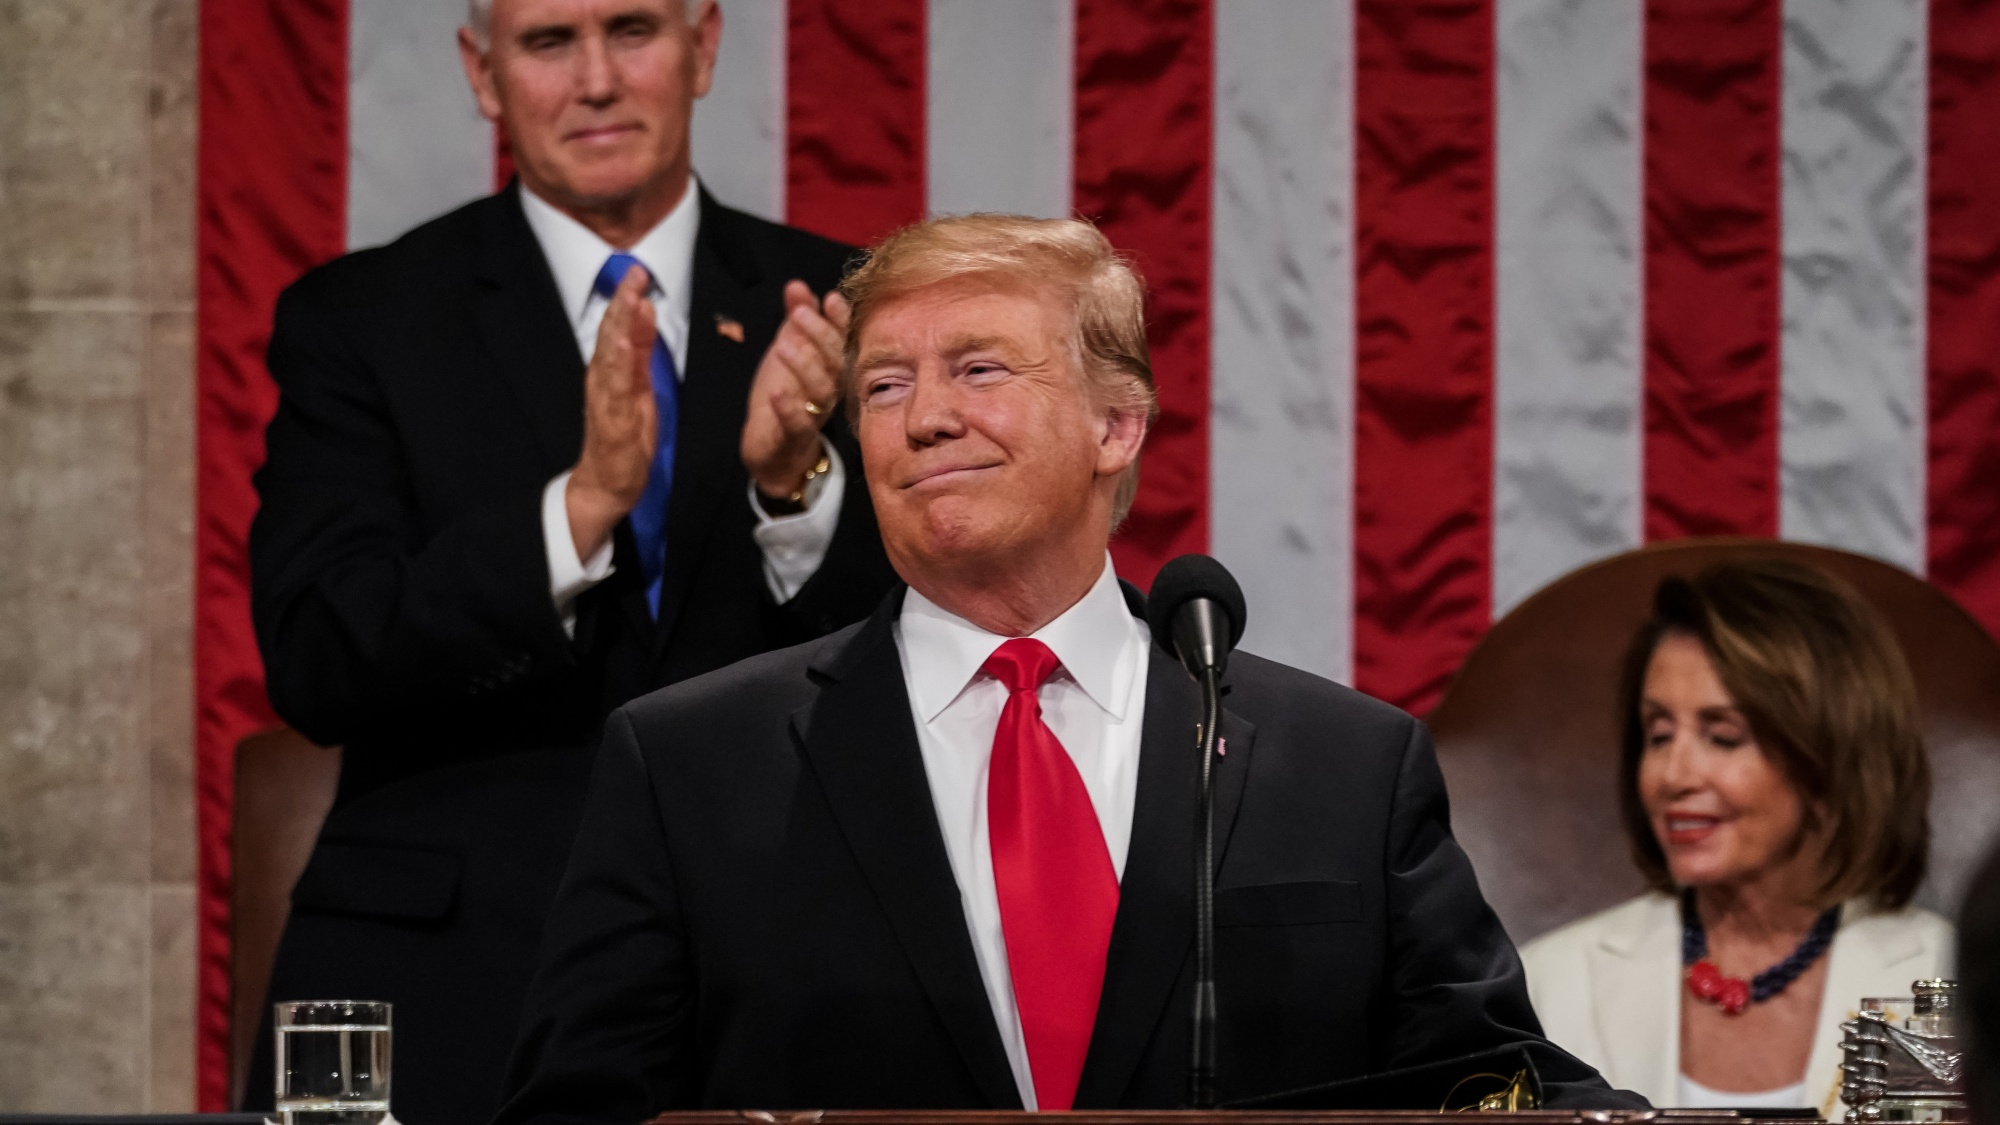 Trump Must Maintain Brand and Remain Authentic, Says Raj Shah